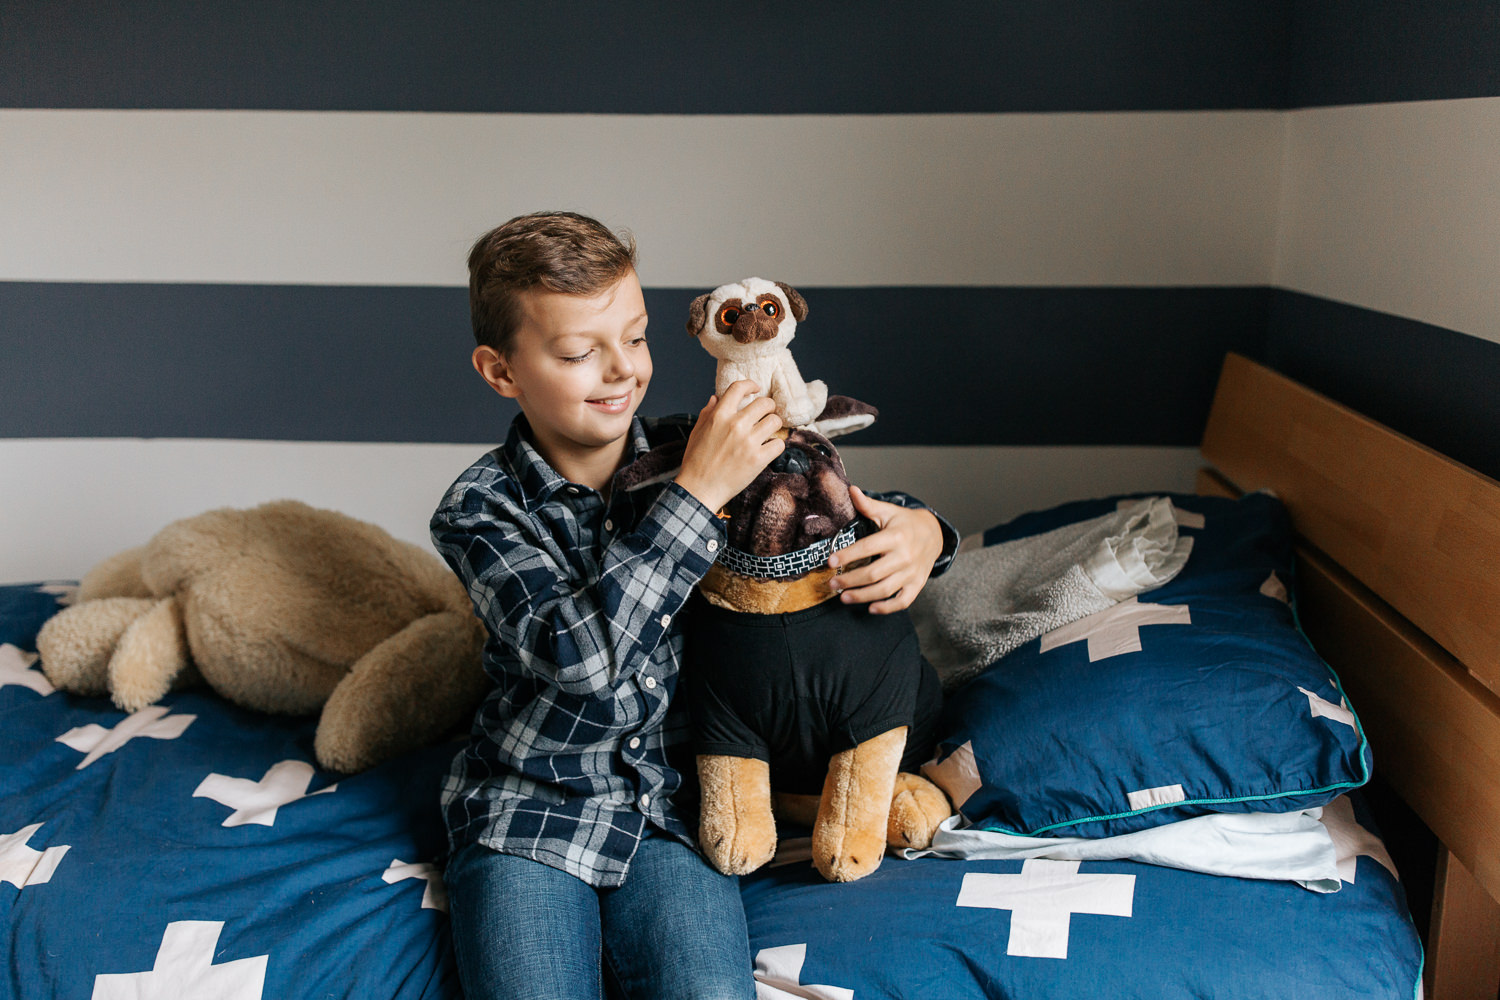 9 year old boy in plaid shirt with light brown hair sitting on bed in blue and white room holding toy pug stuffed animals, smiling at them - Markham In-Home Photography